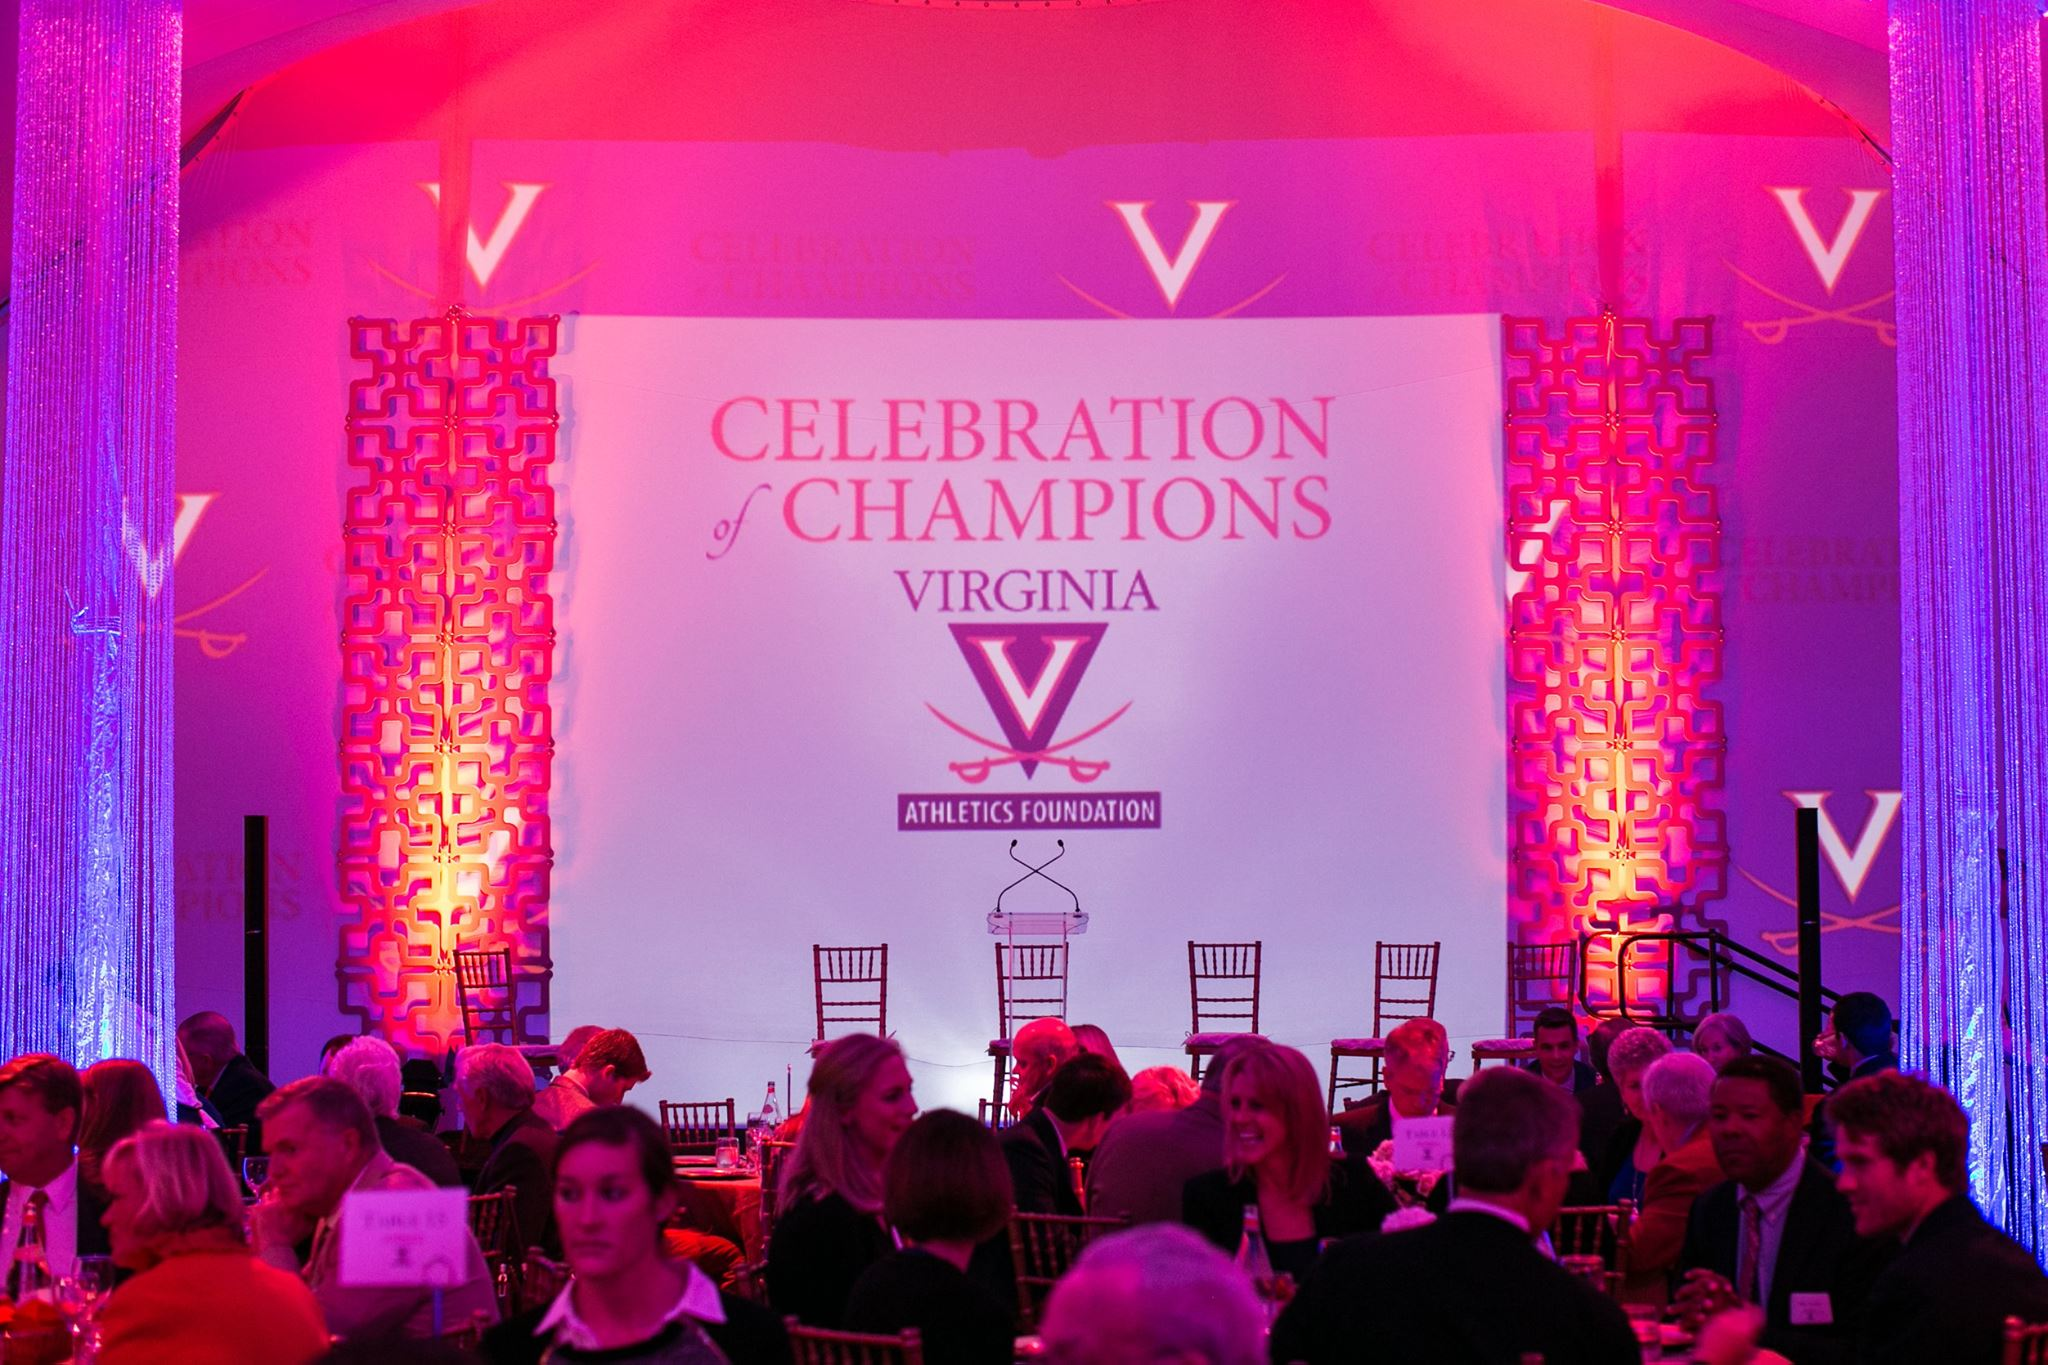 celebrationofchampions-uva-event-graphics.jpg